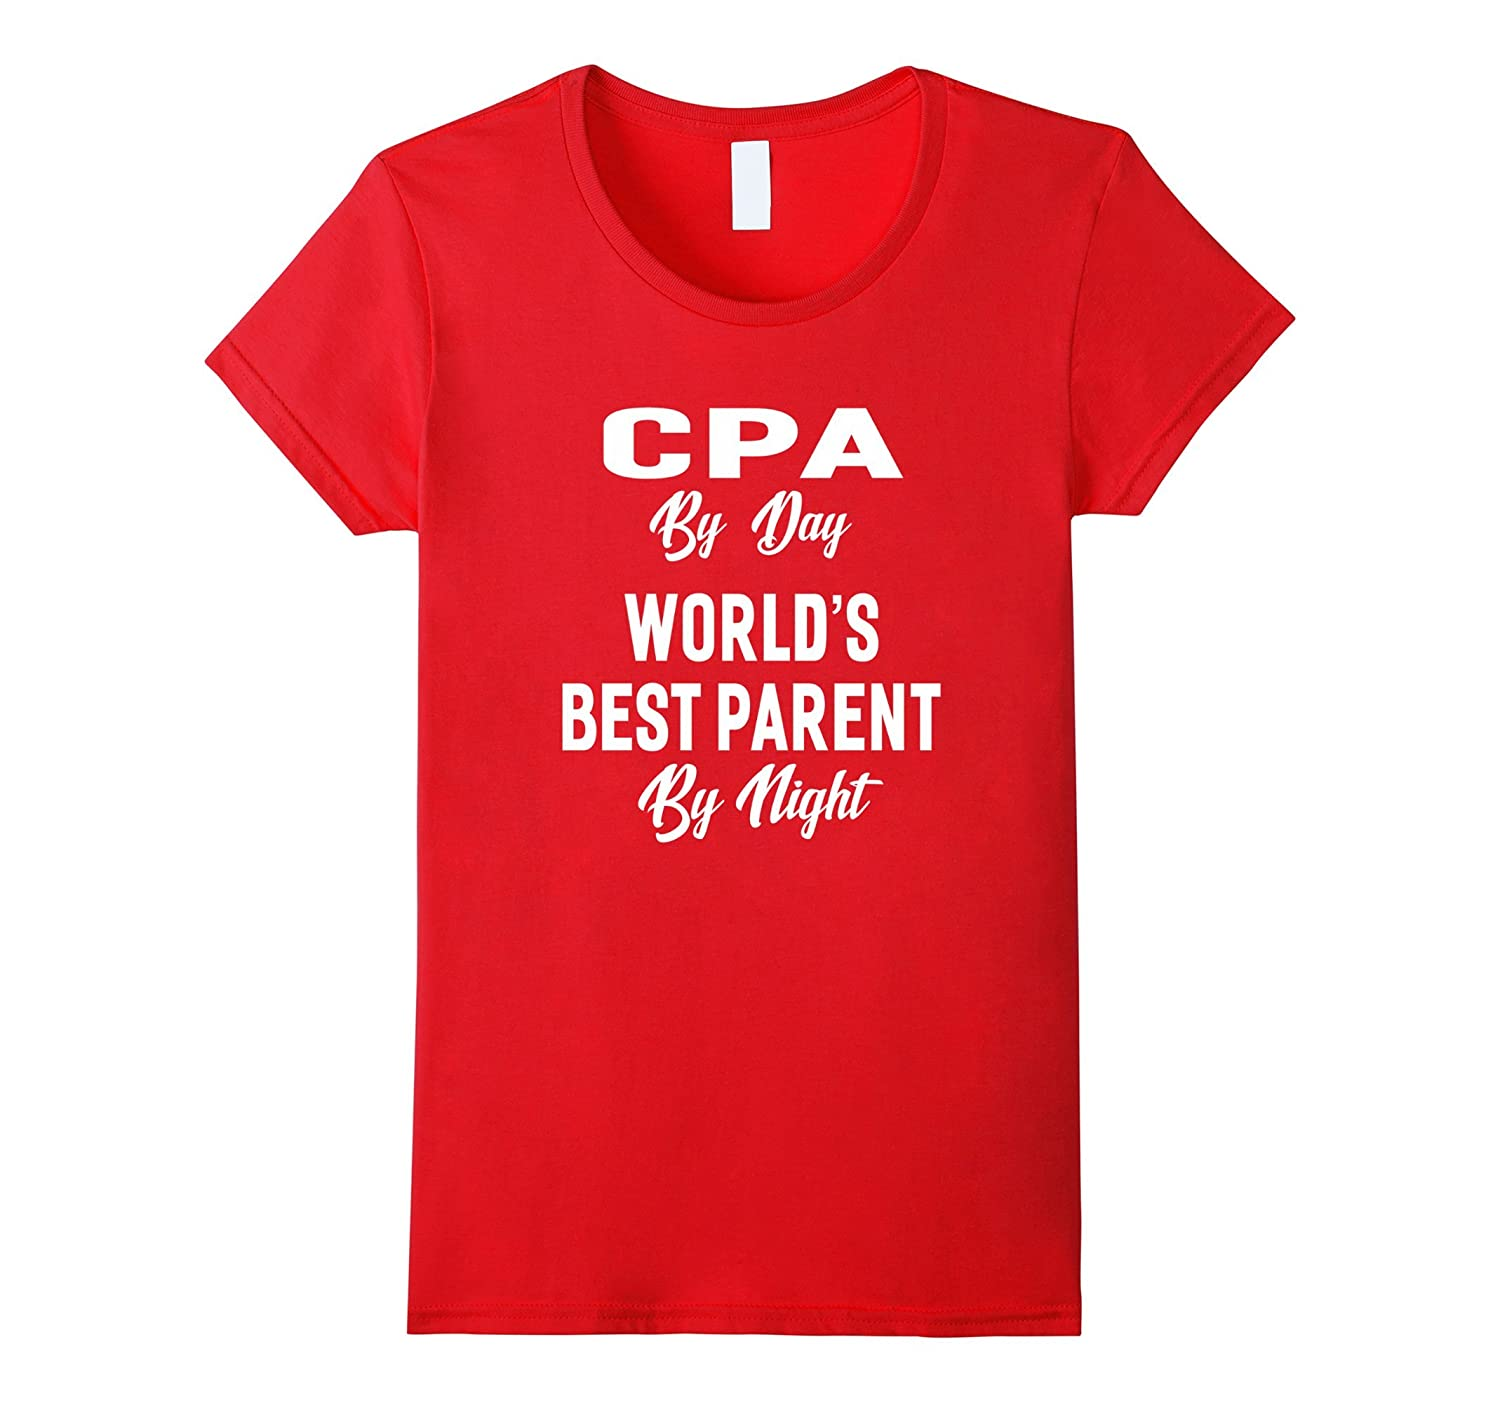 CPA By Day World's Best Parent By Night T-shirt Unisex Gift